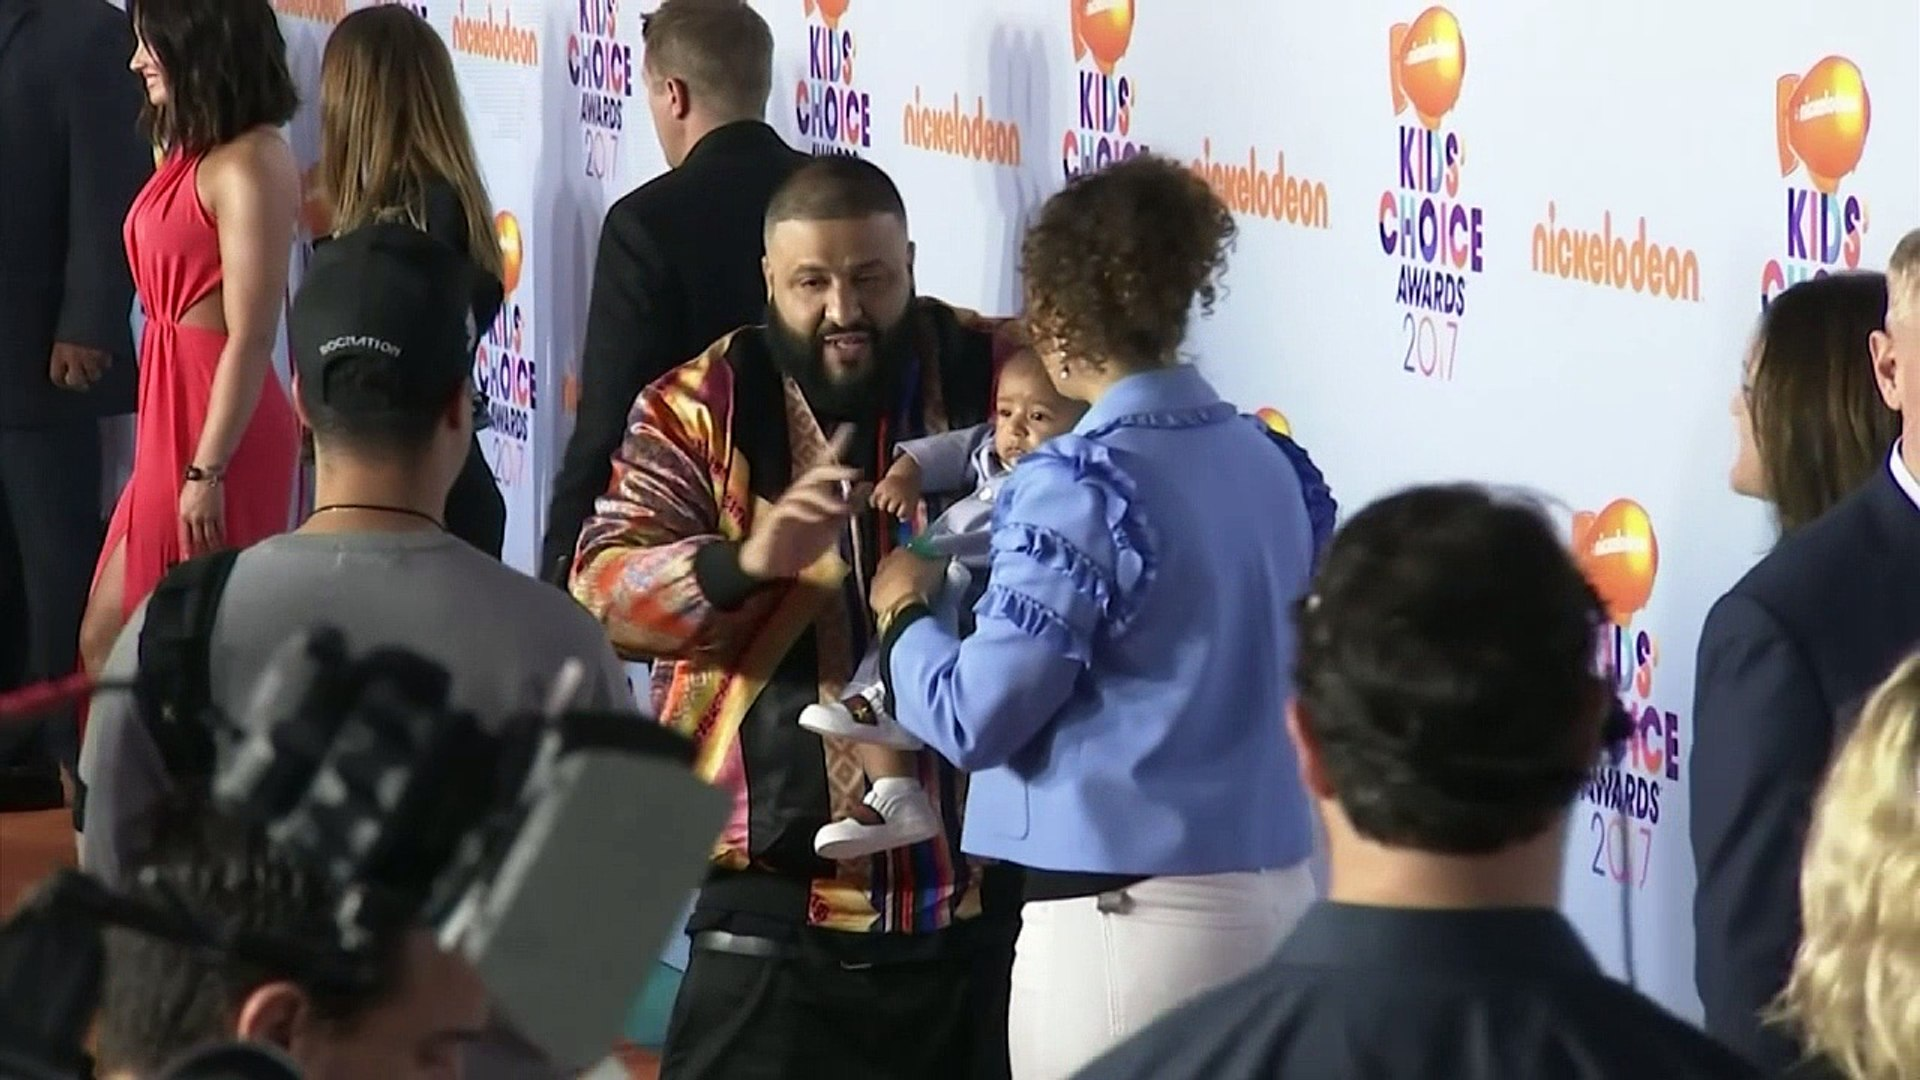 Stars sport quirky styles at Nickelodeon Kids' Choice Awards